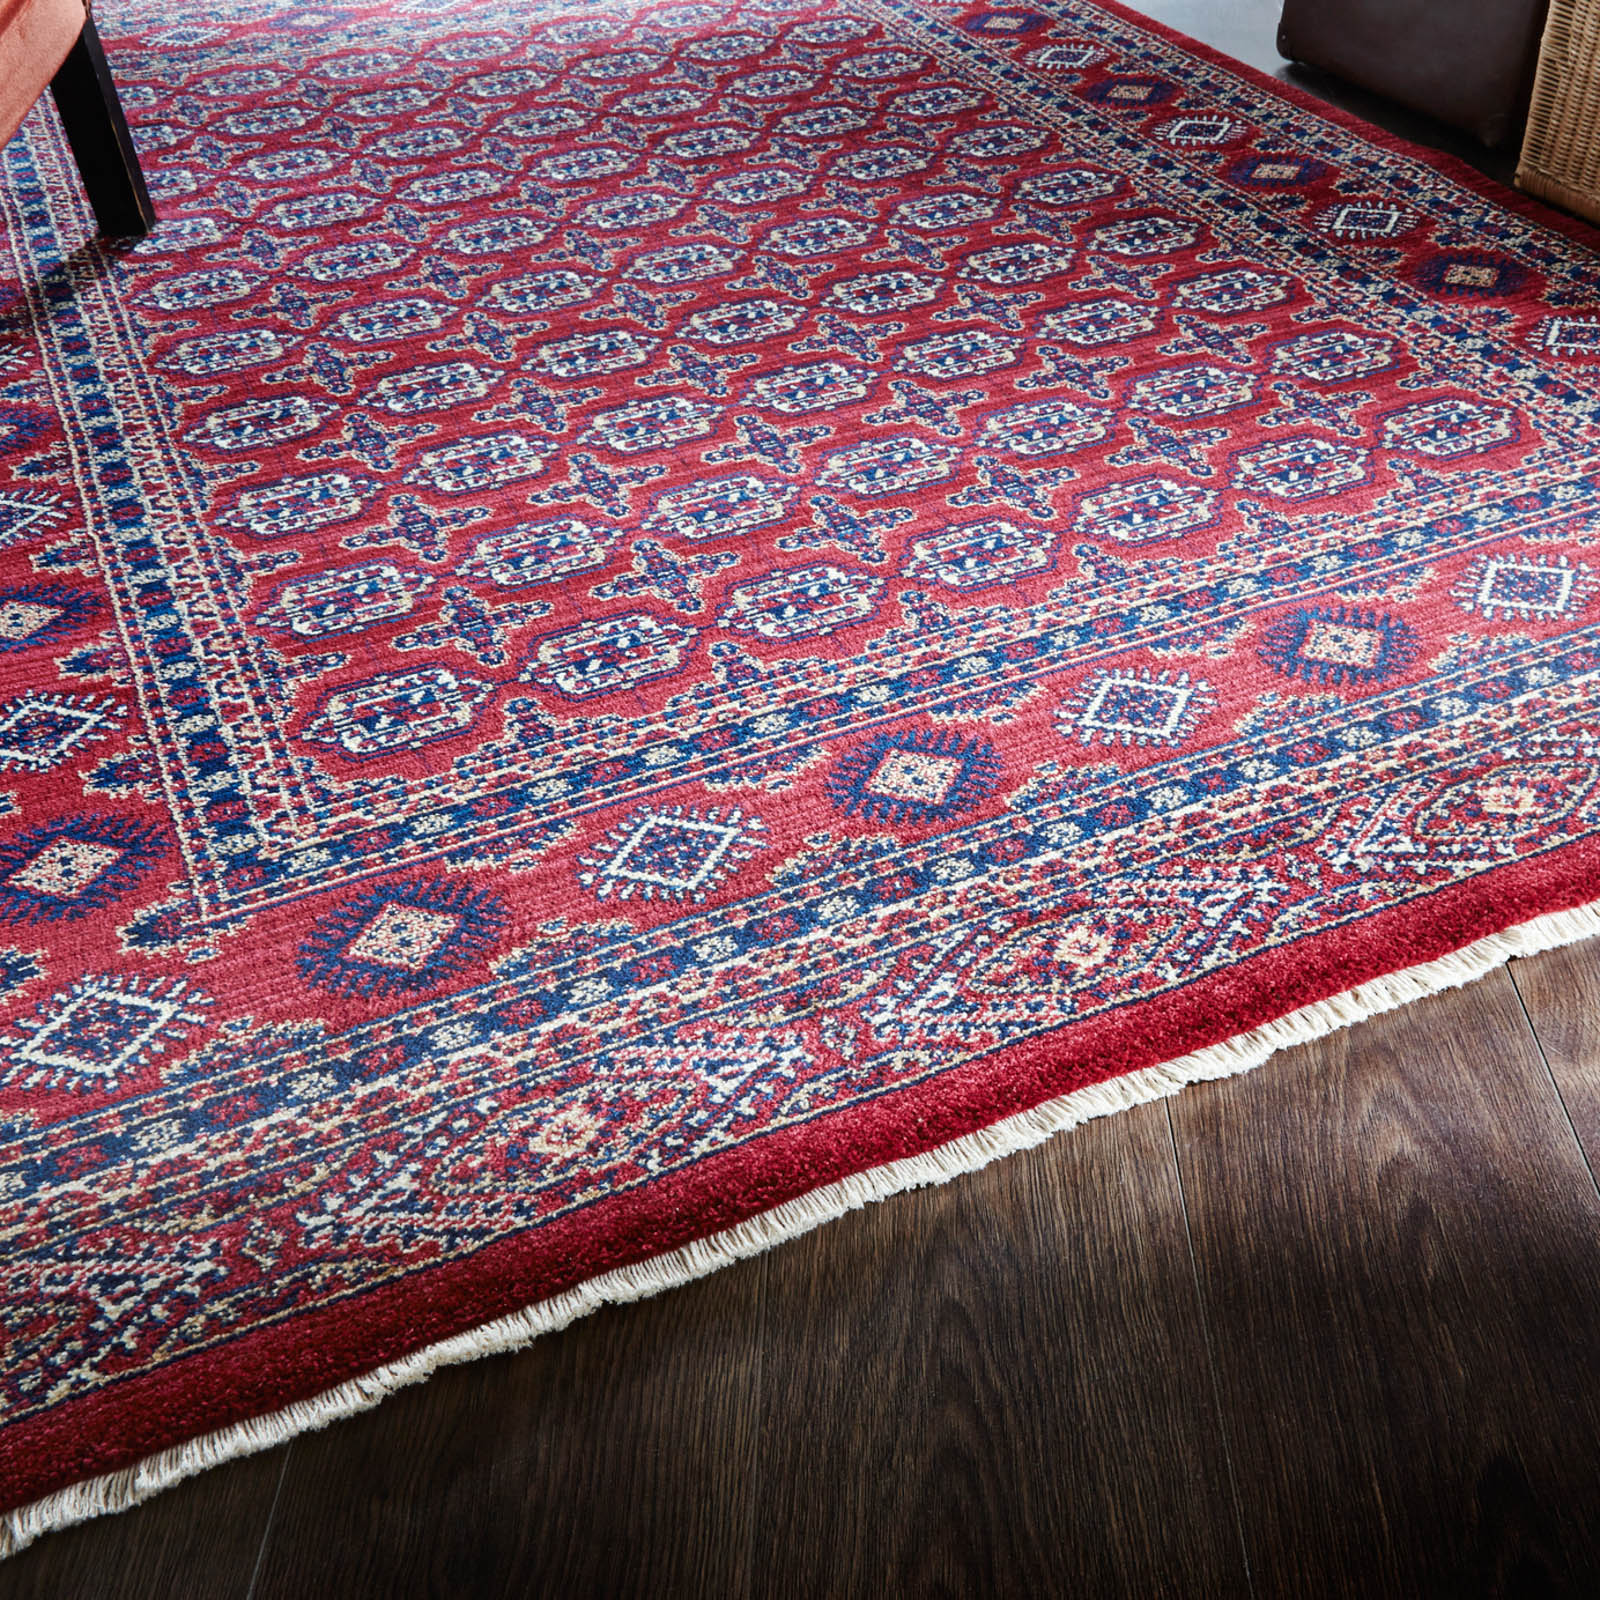 Persia Astara Rugs in Red